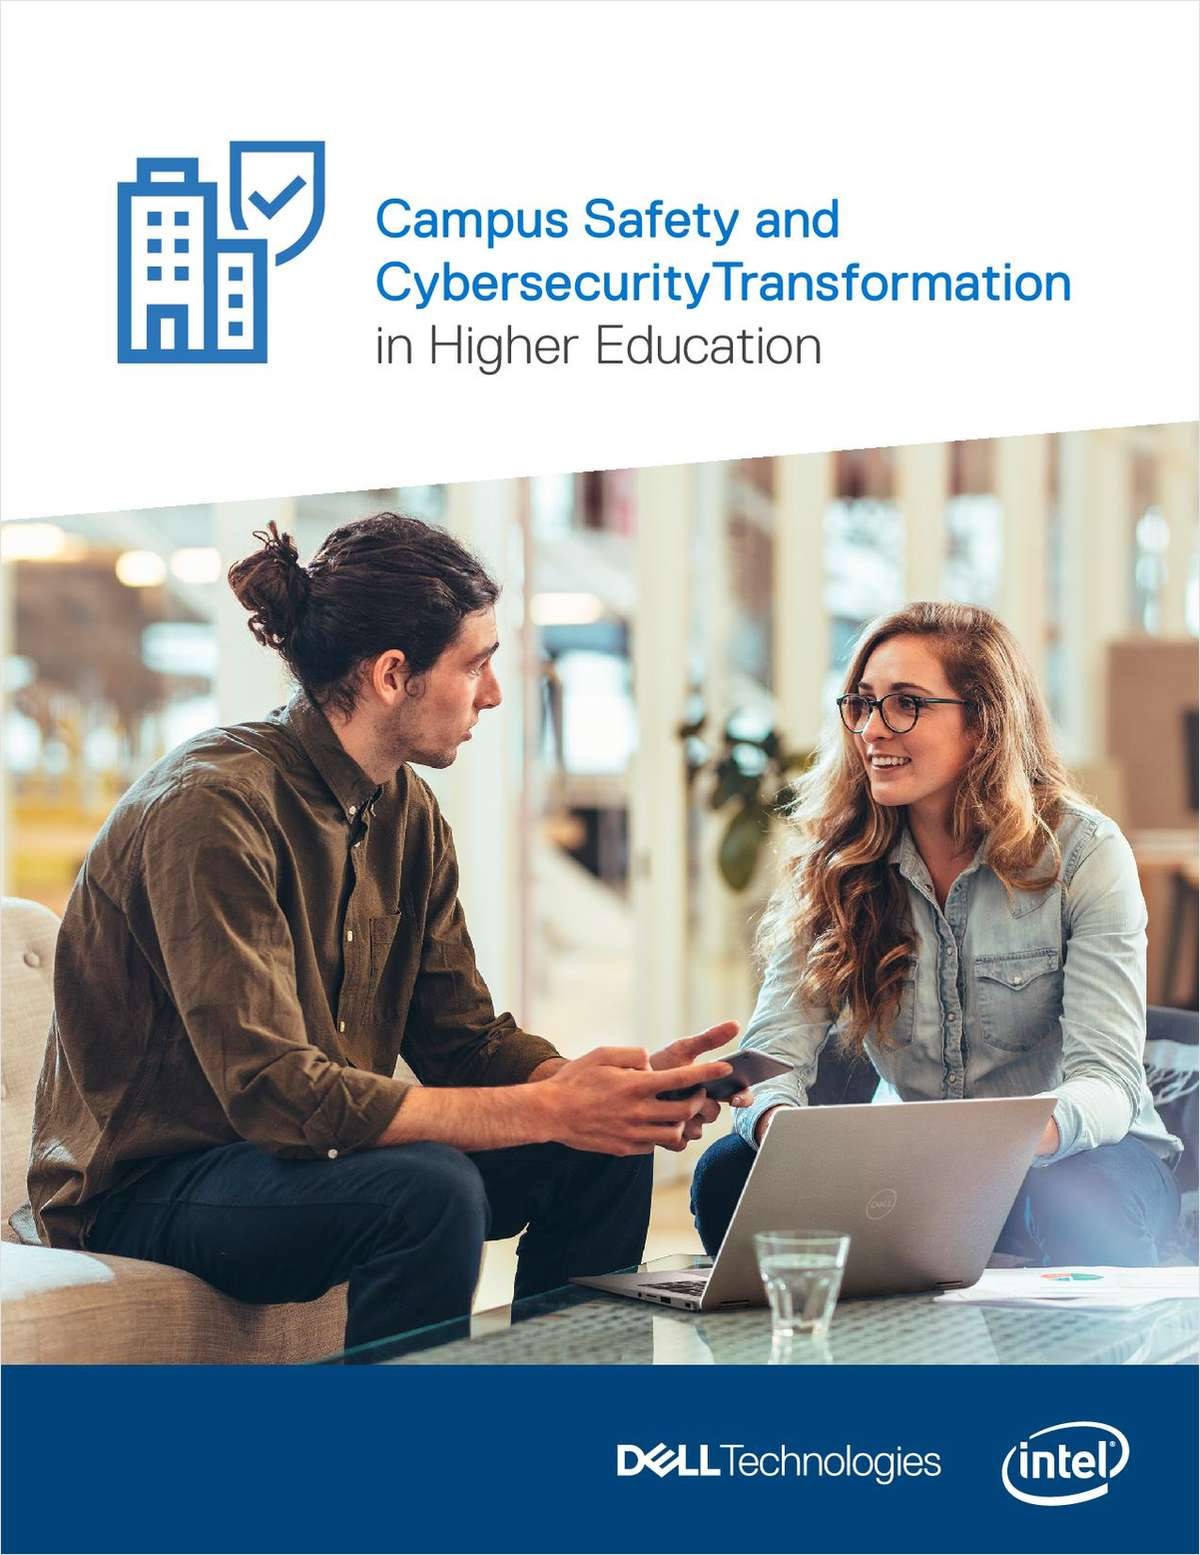 Cybersecurity & Campus Safety in Higher Education